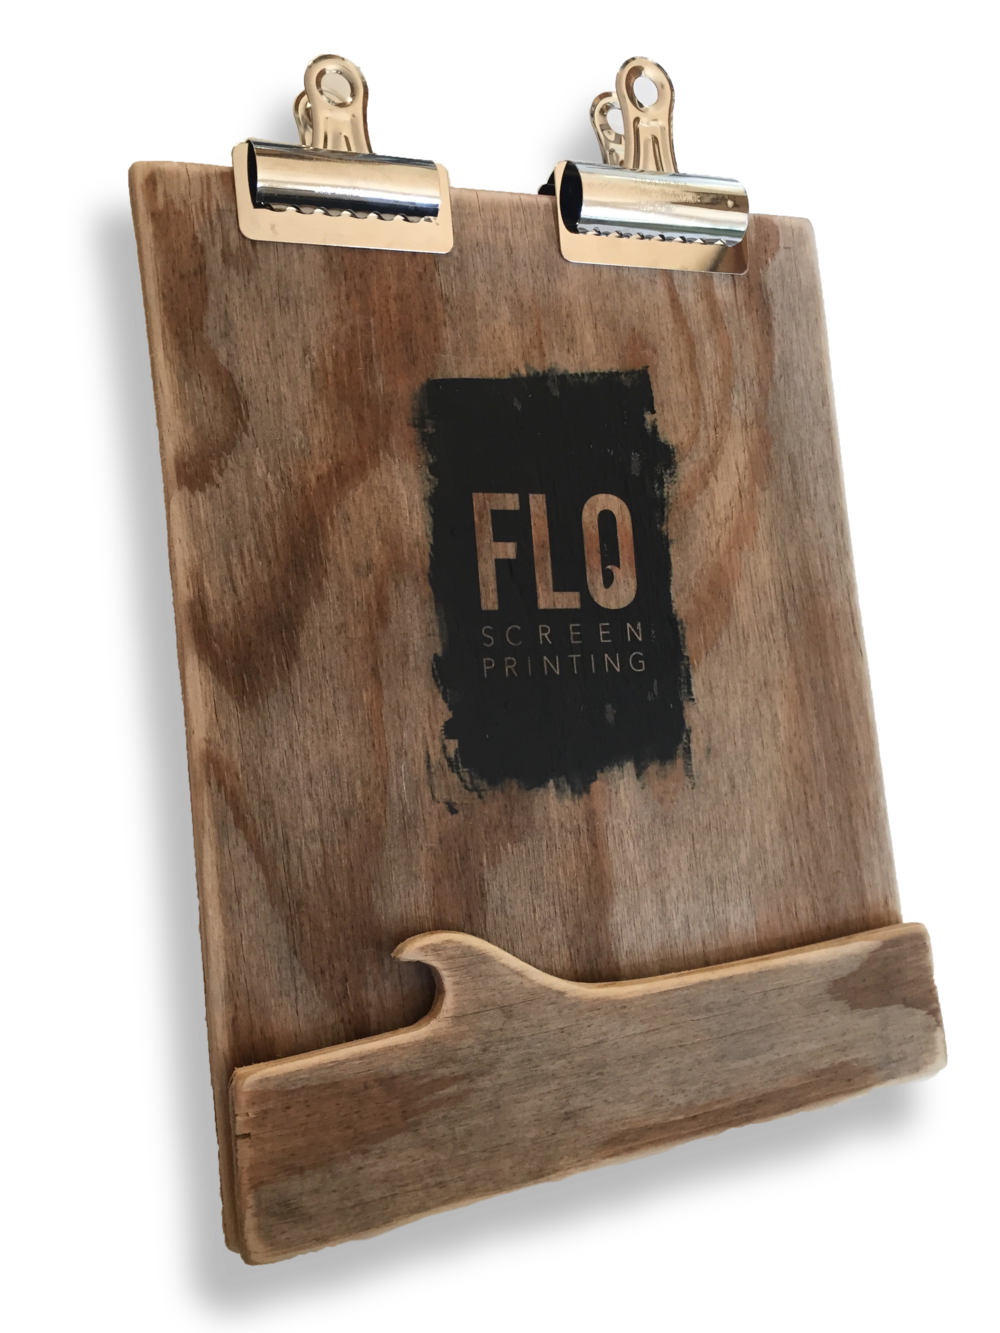 Hand made wood clip board for Flo Screen Printing